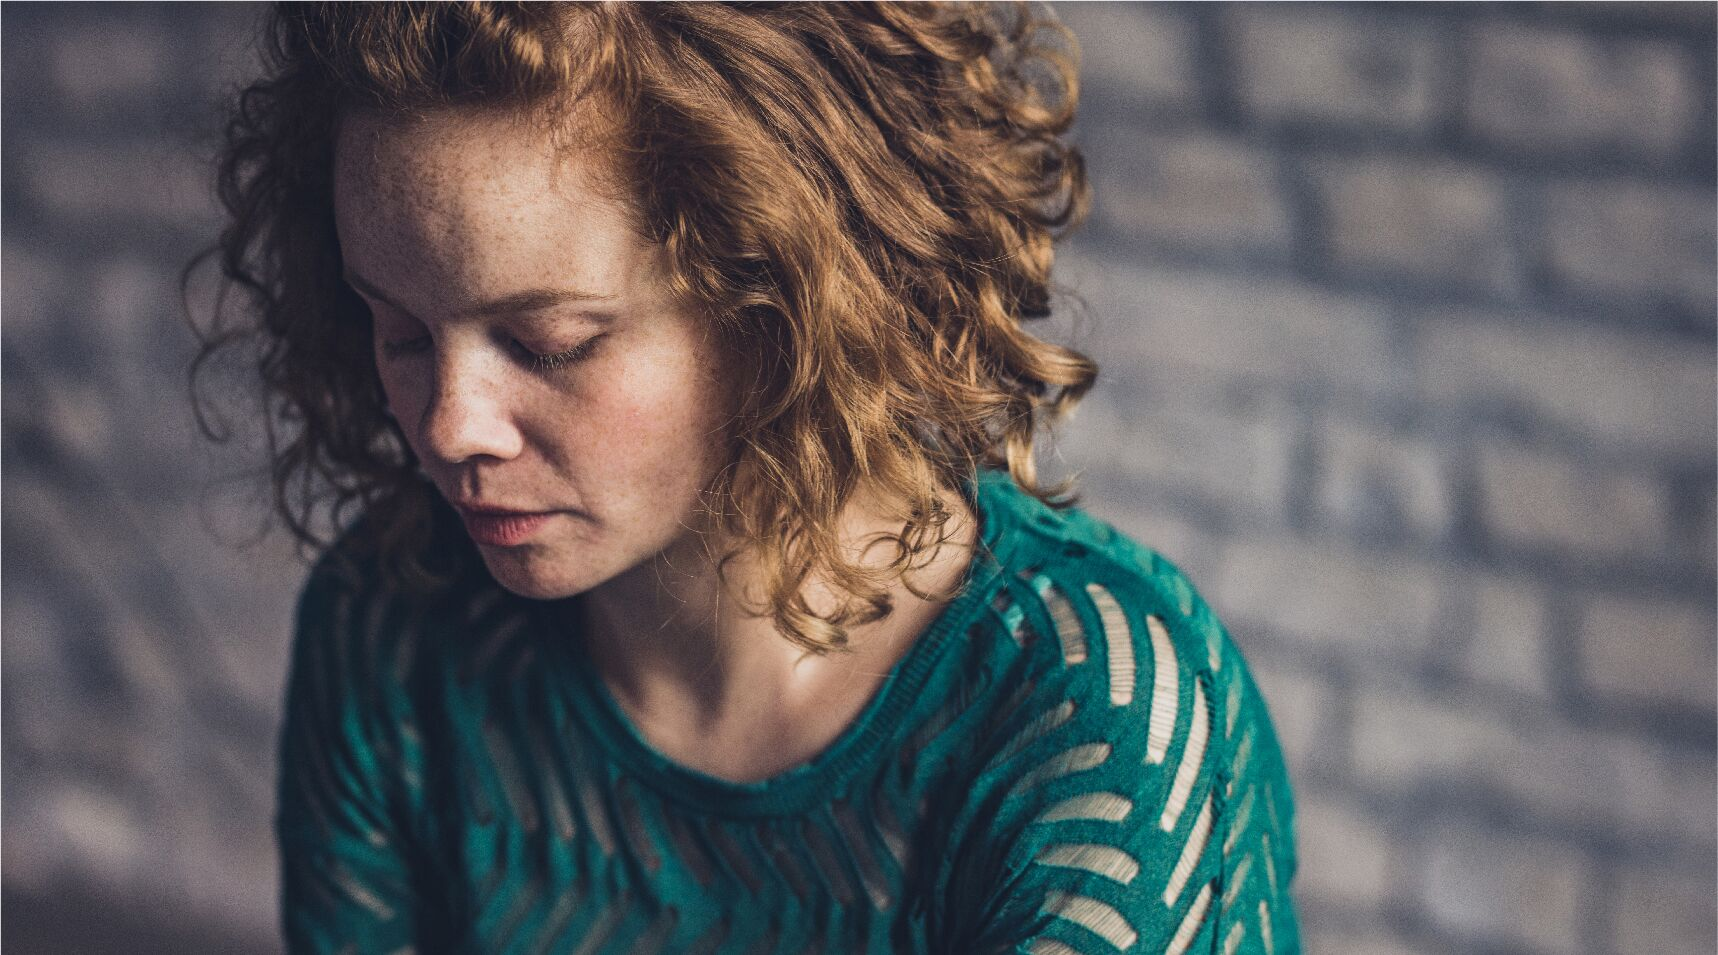 There can be a lot of stigma surrounding child sexual abuse; here's how to combat it.